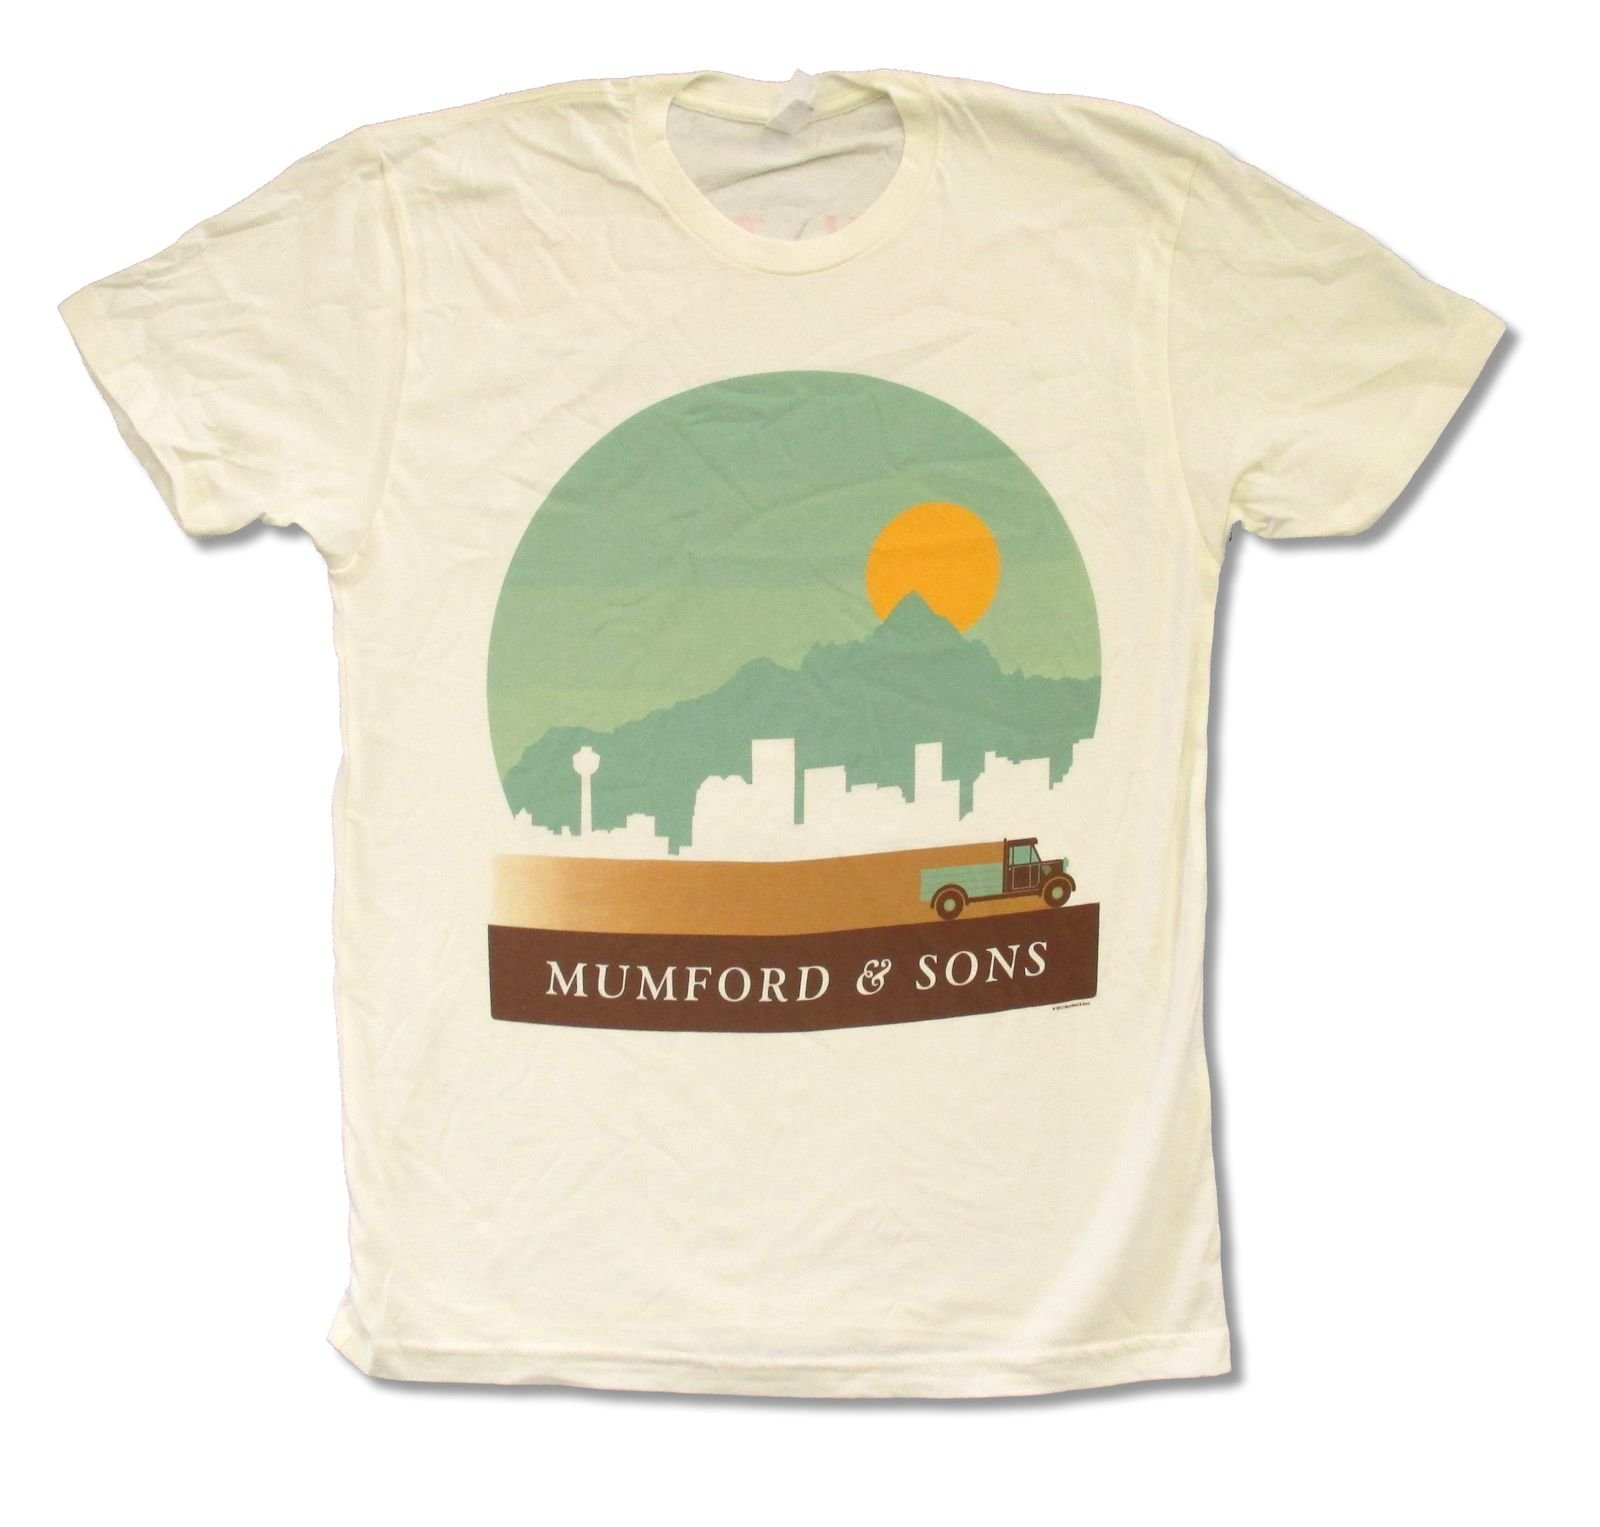 Mumford & Sons ''Calgary to Telluride'' Summer 2013 Tour Tan T-shirt (Small)